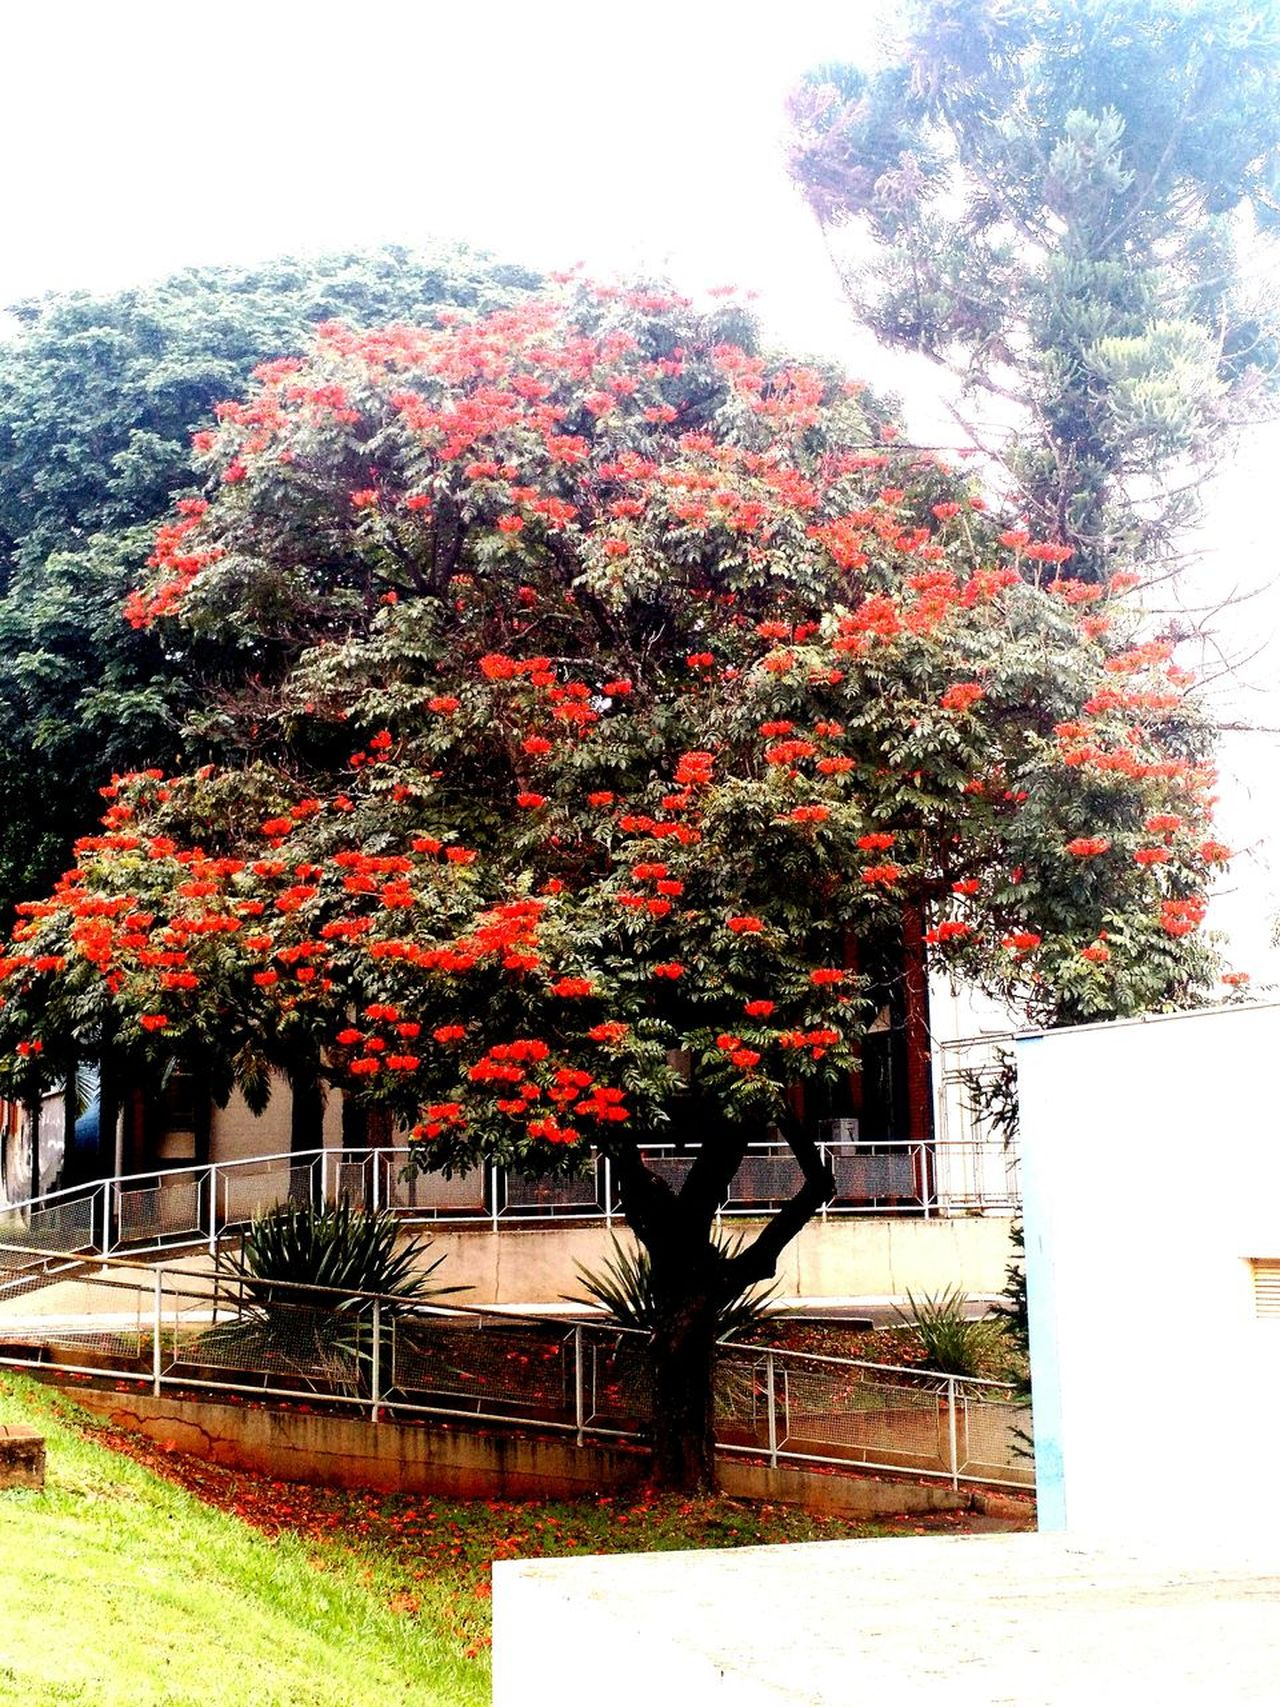 Day Tree Flower In TreeBeauty In Nature Freshness Flower Red Unicamp Nature Simplcity Normal Day